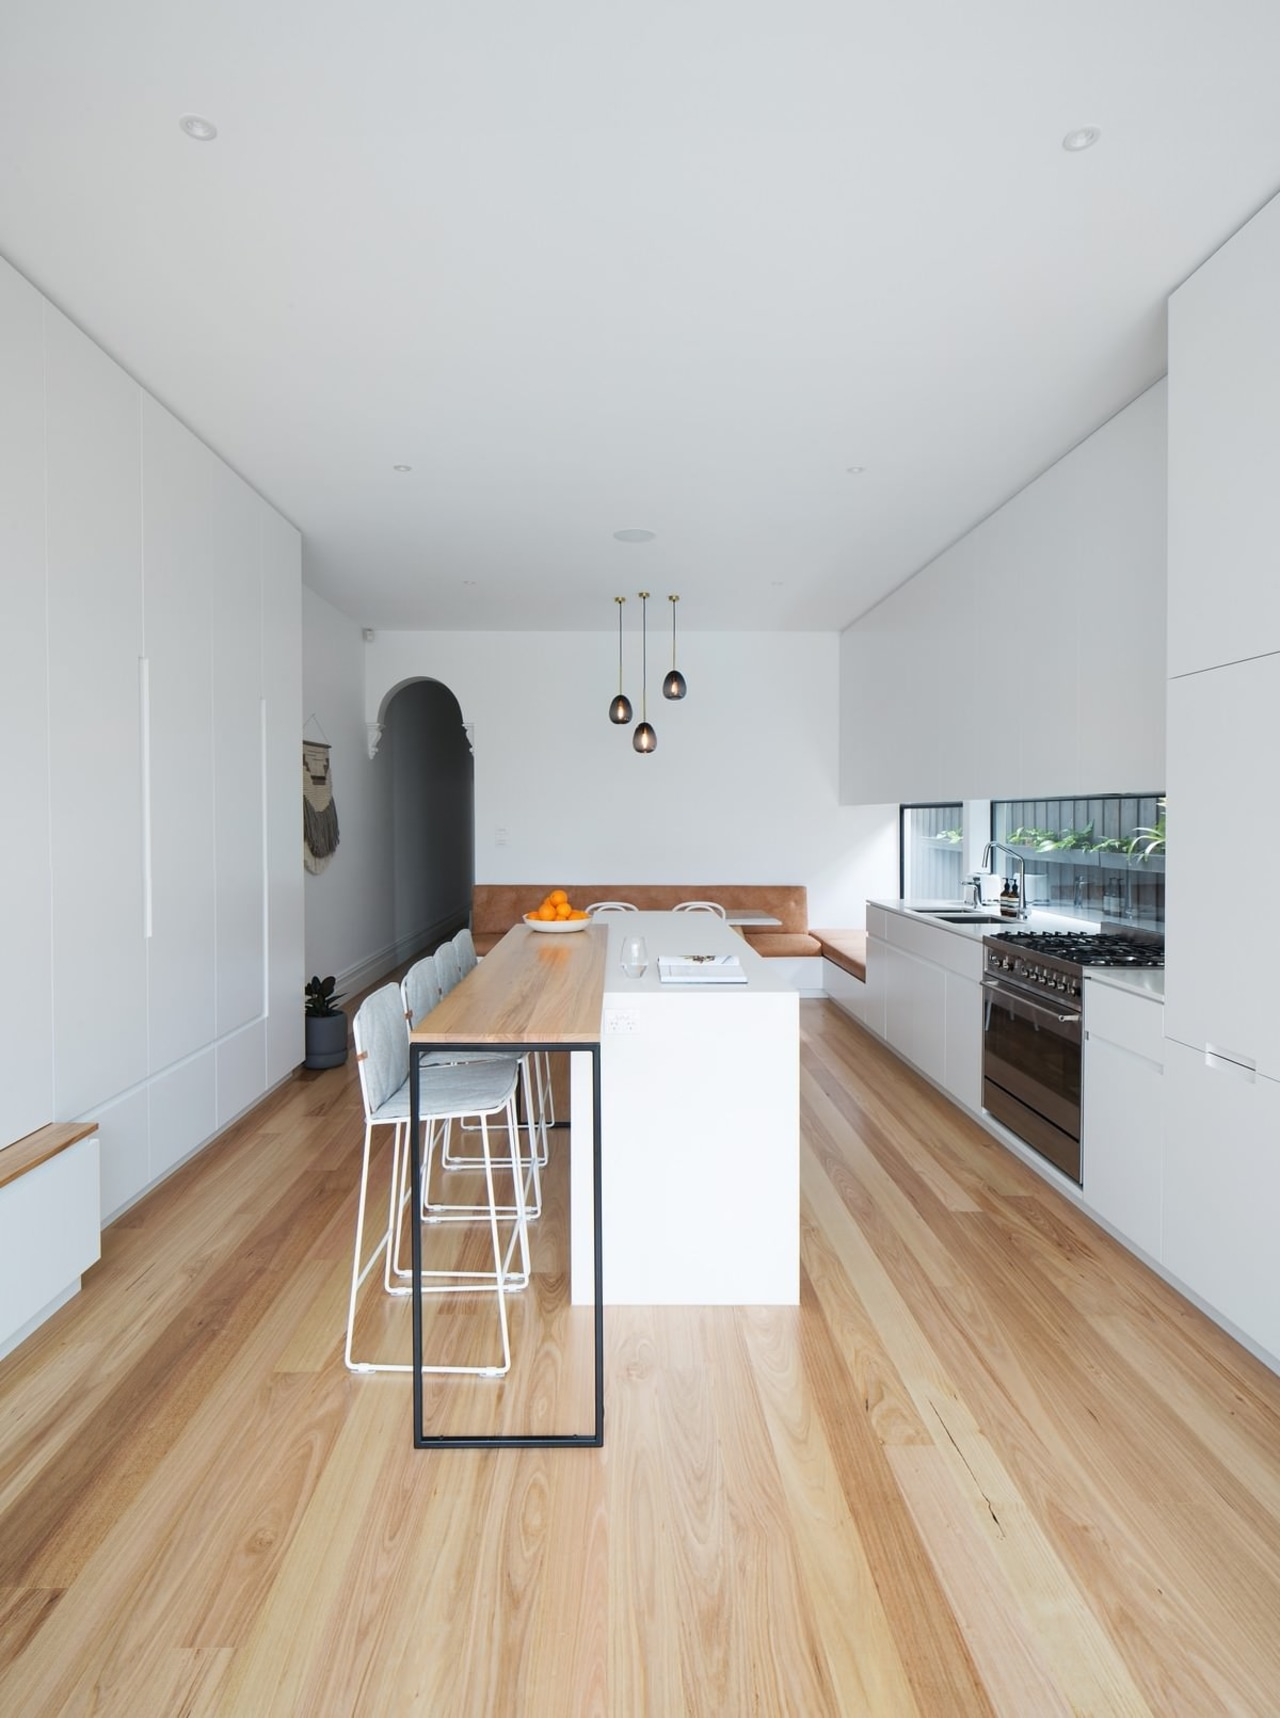 This kitchen features ample storage and dining space architecture, ceiling, daylighting, floor, flooring, hardwood, house, interior design, laminate flooring, property, real estate, wood, wood flooring, white